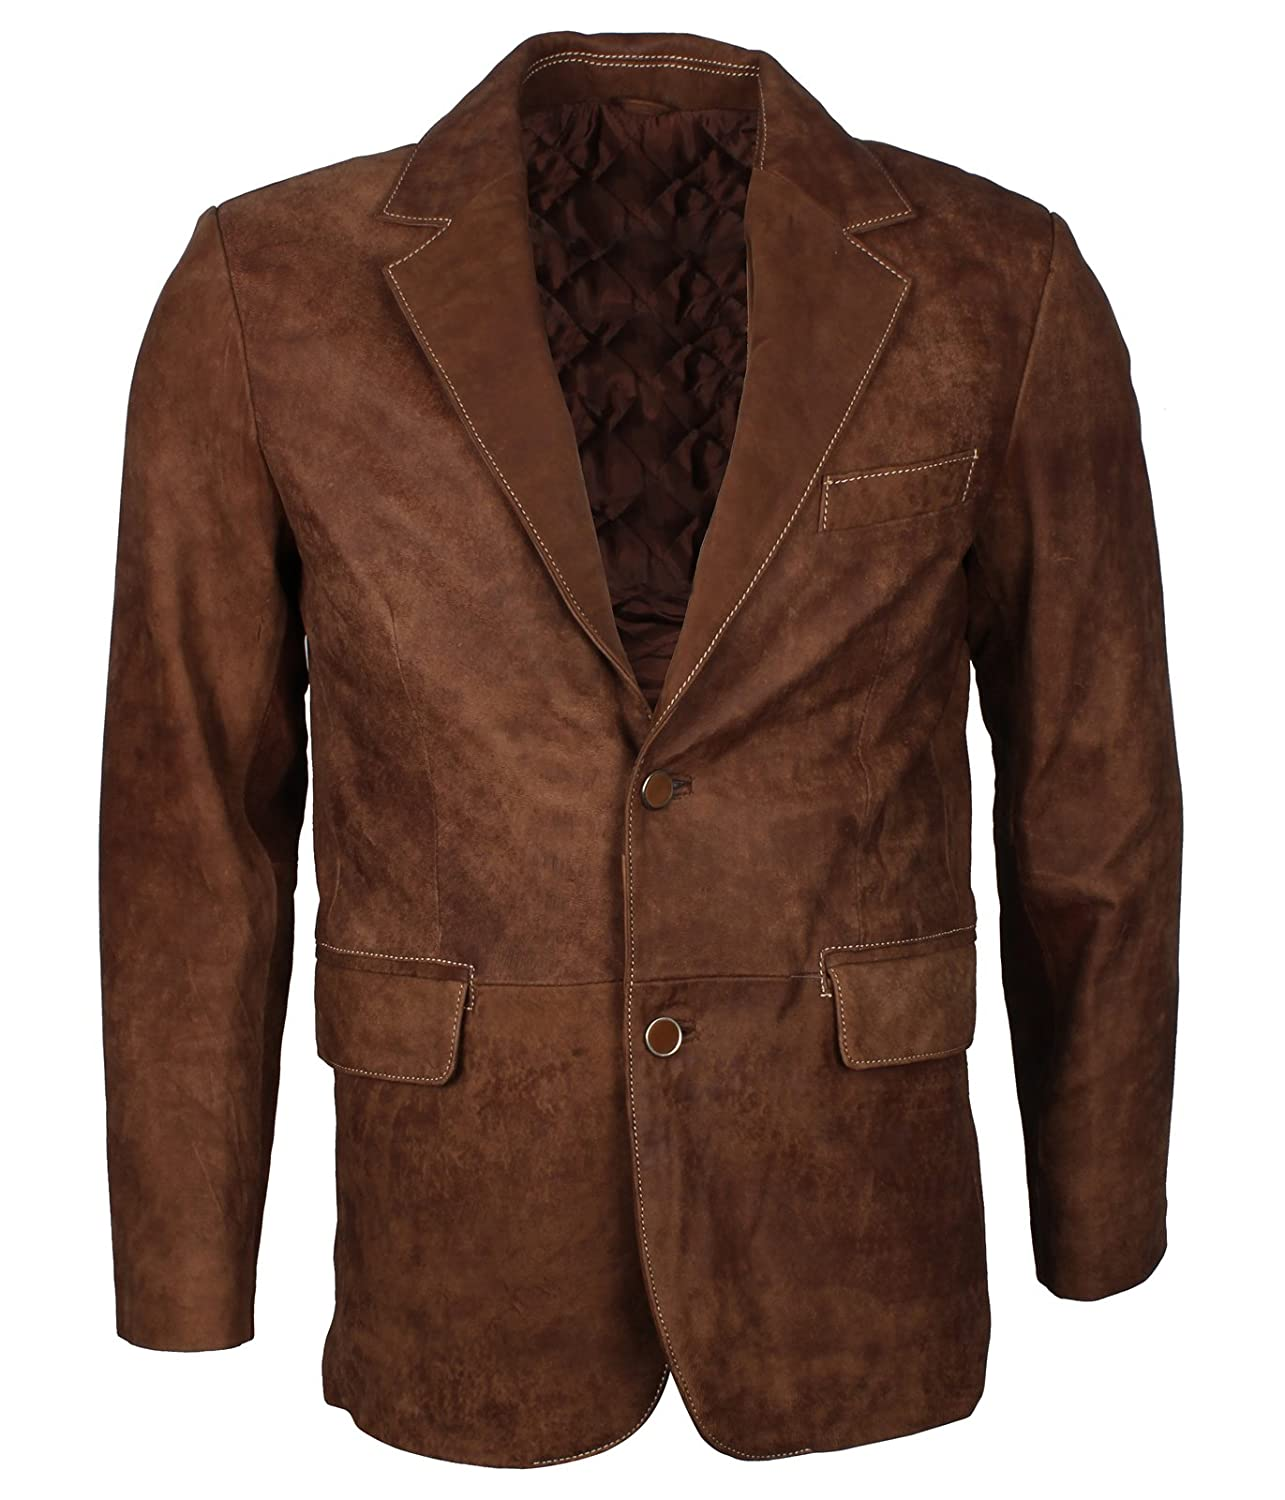 New Mens Formal Suede Leather Coat /